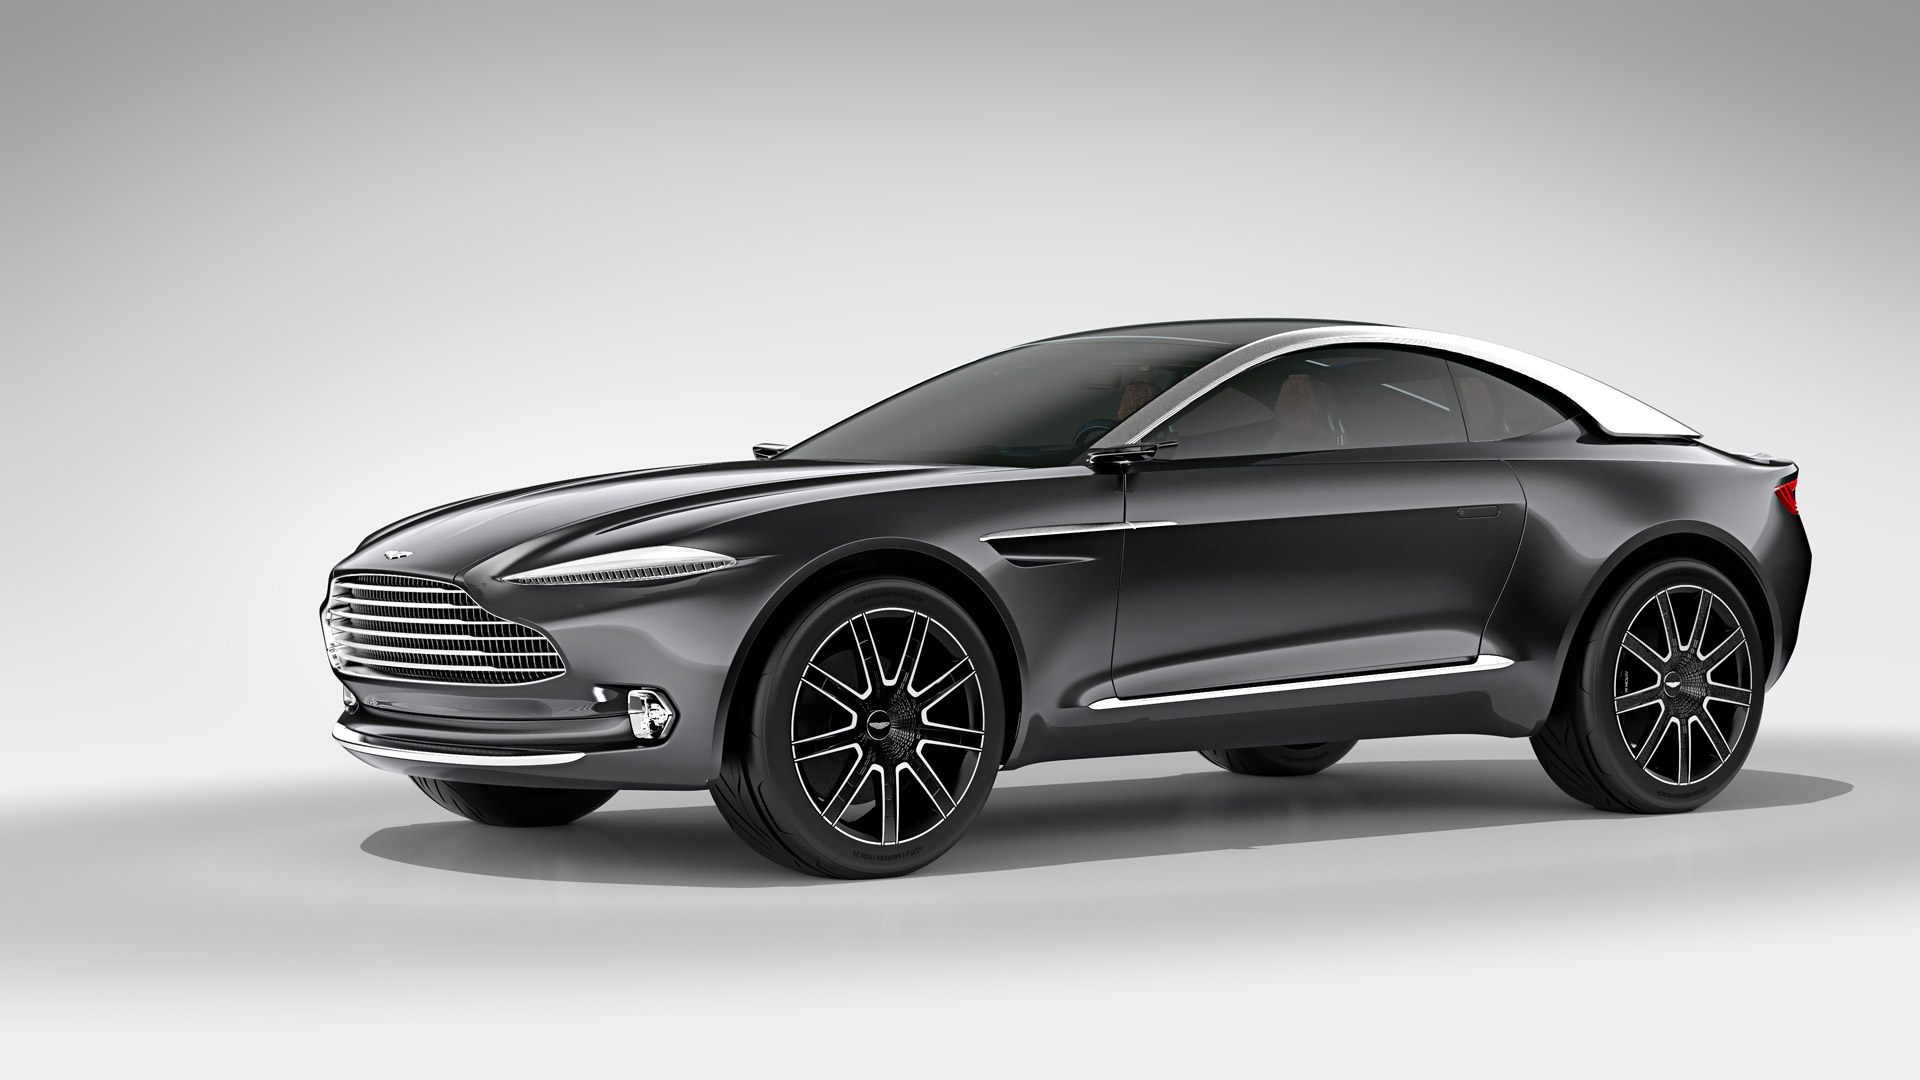 aston martin suv will no longer offer electric powertrain